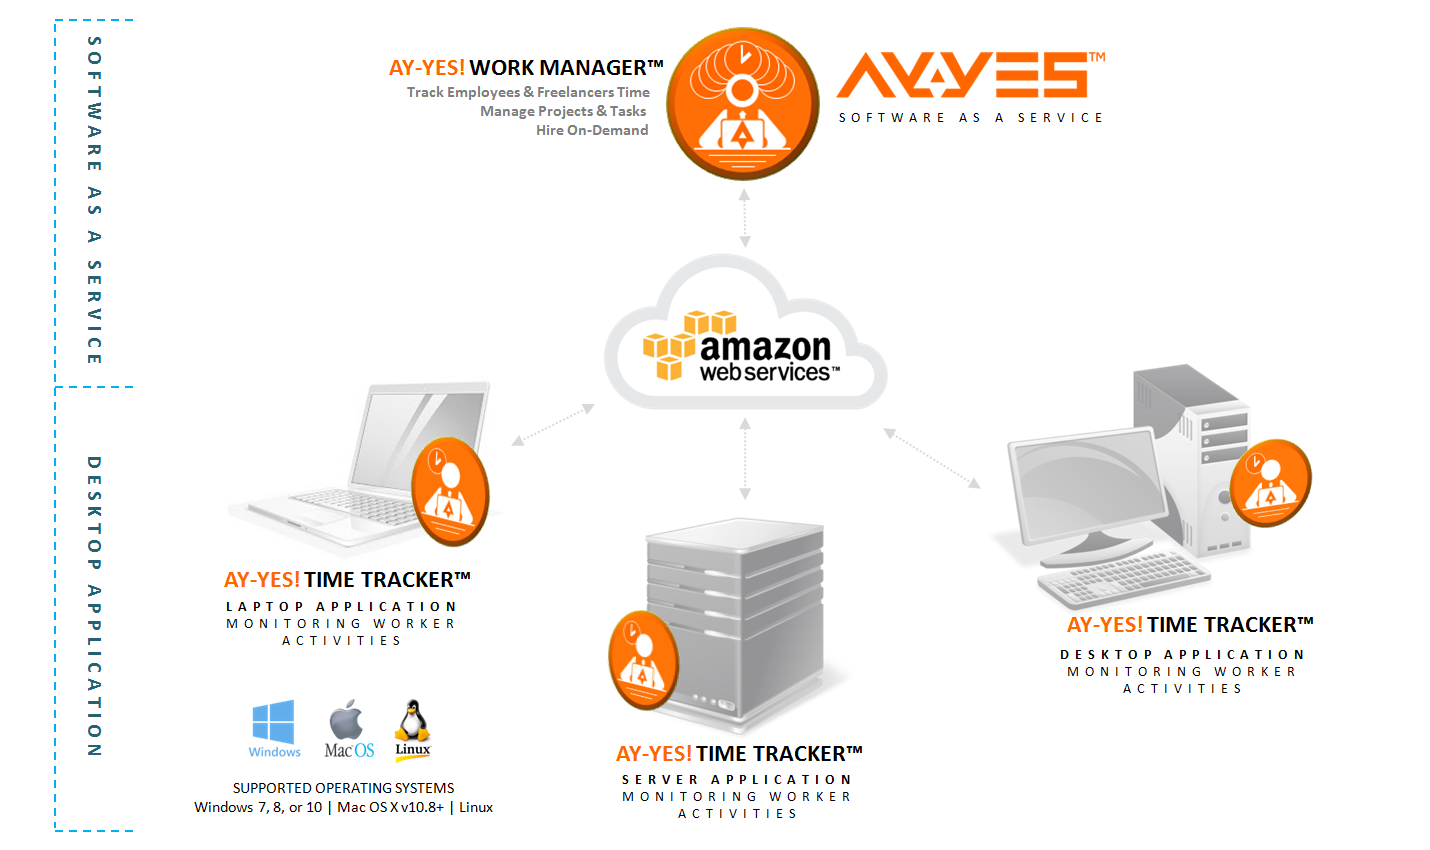 AY-YES! Work Manager™ Software As A Service Project Management AY-YES! Time Tracker™